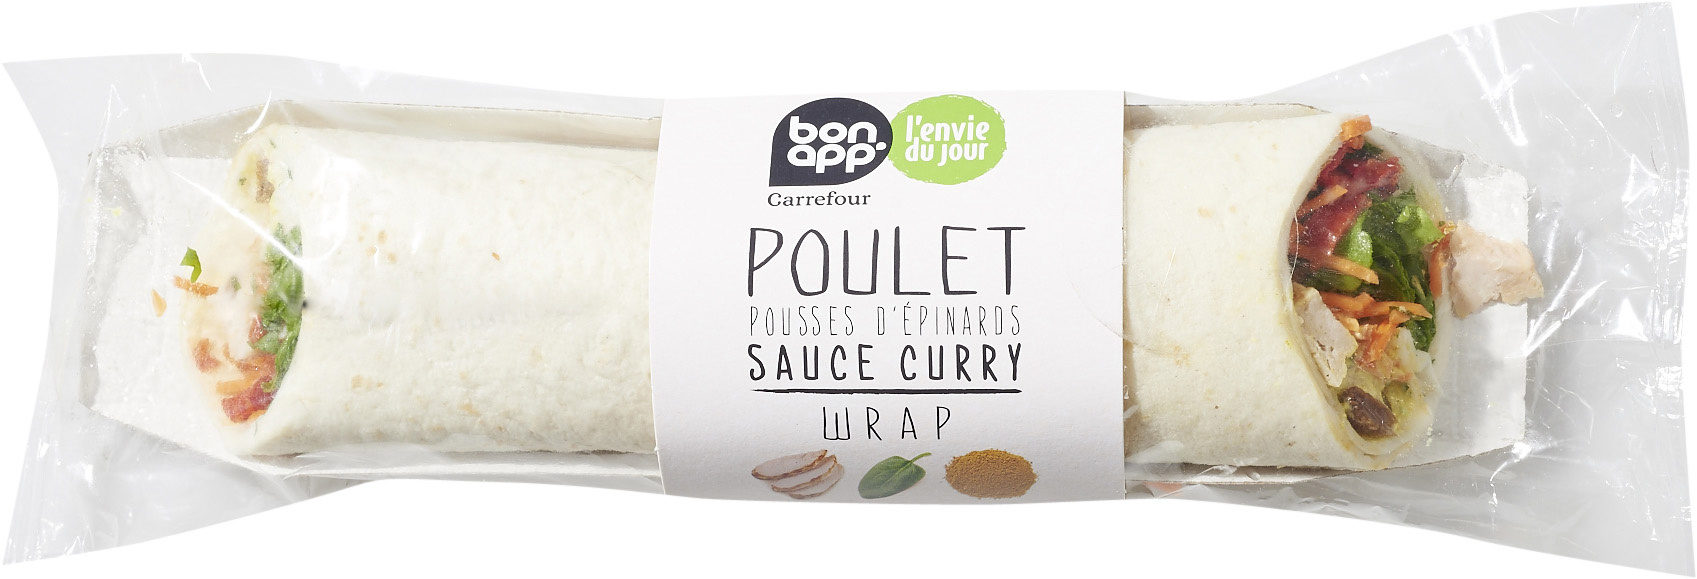 Poulet pousses d'épinards sauce curry wrap - Product - fr